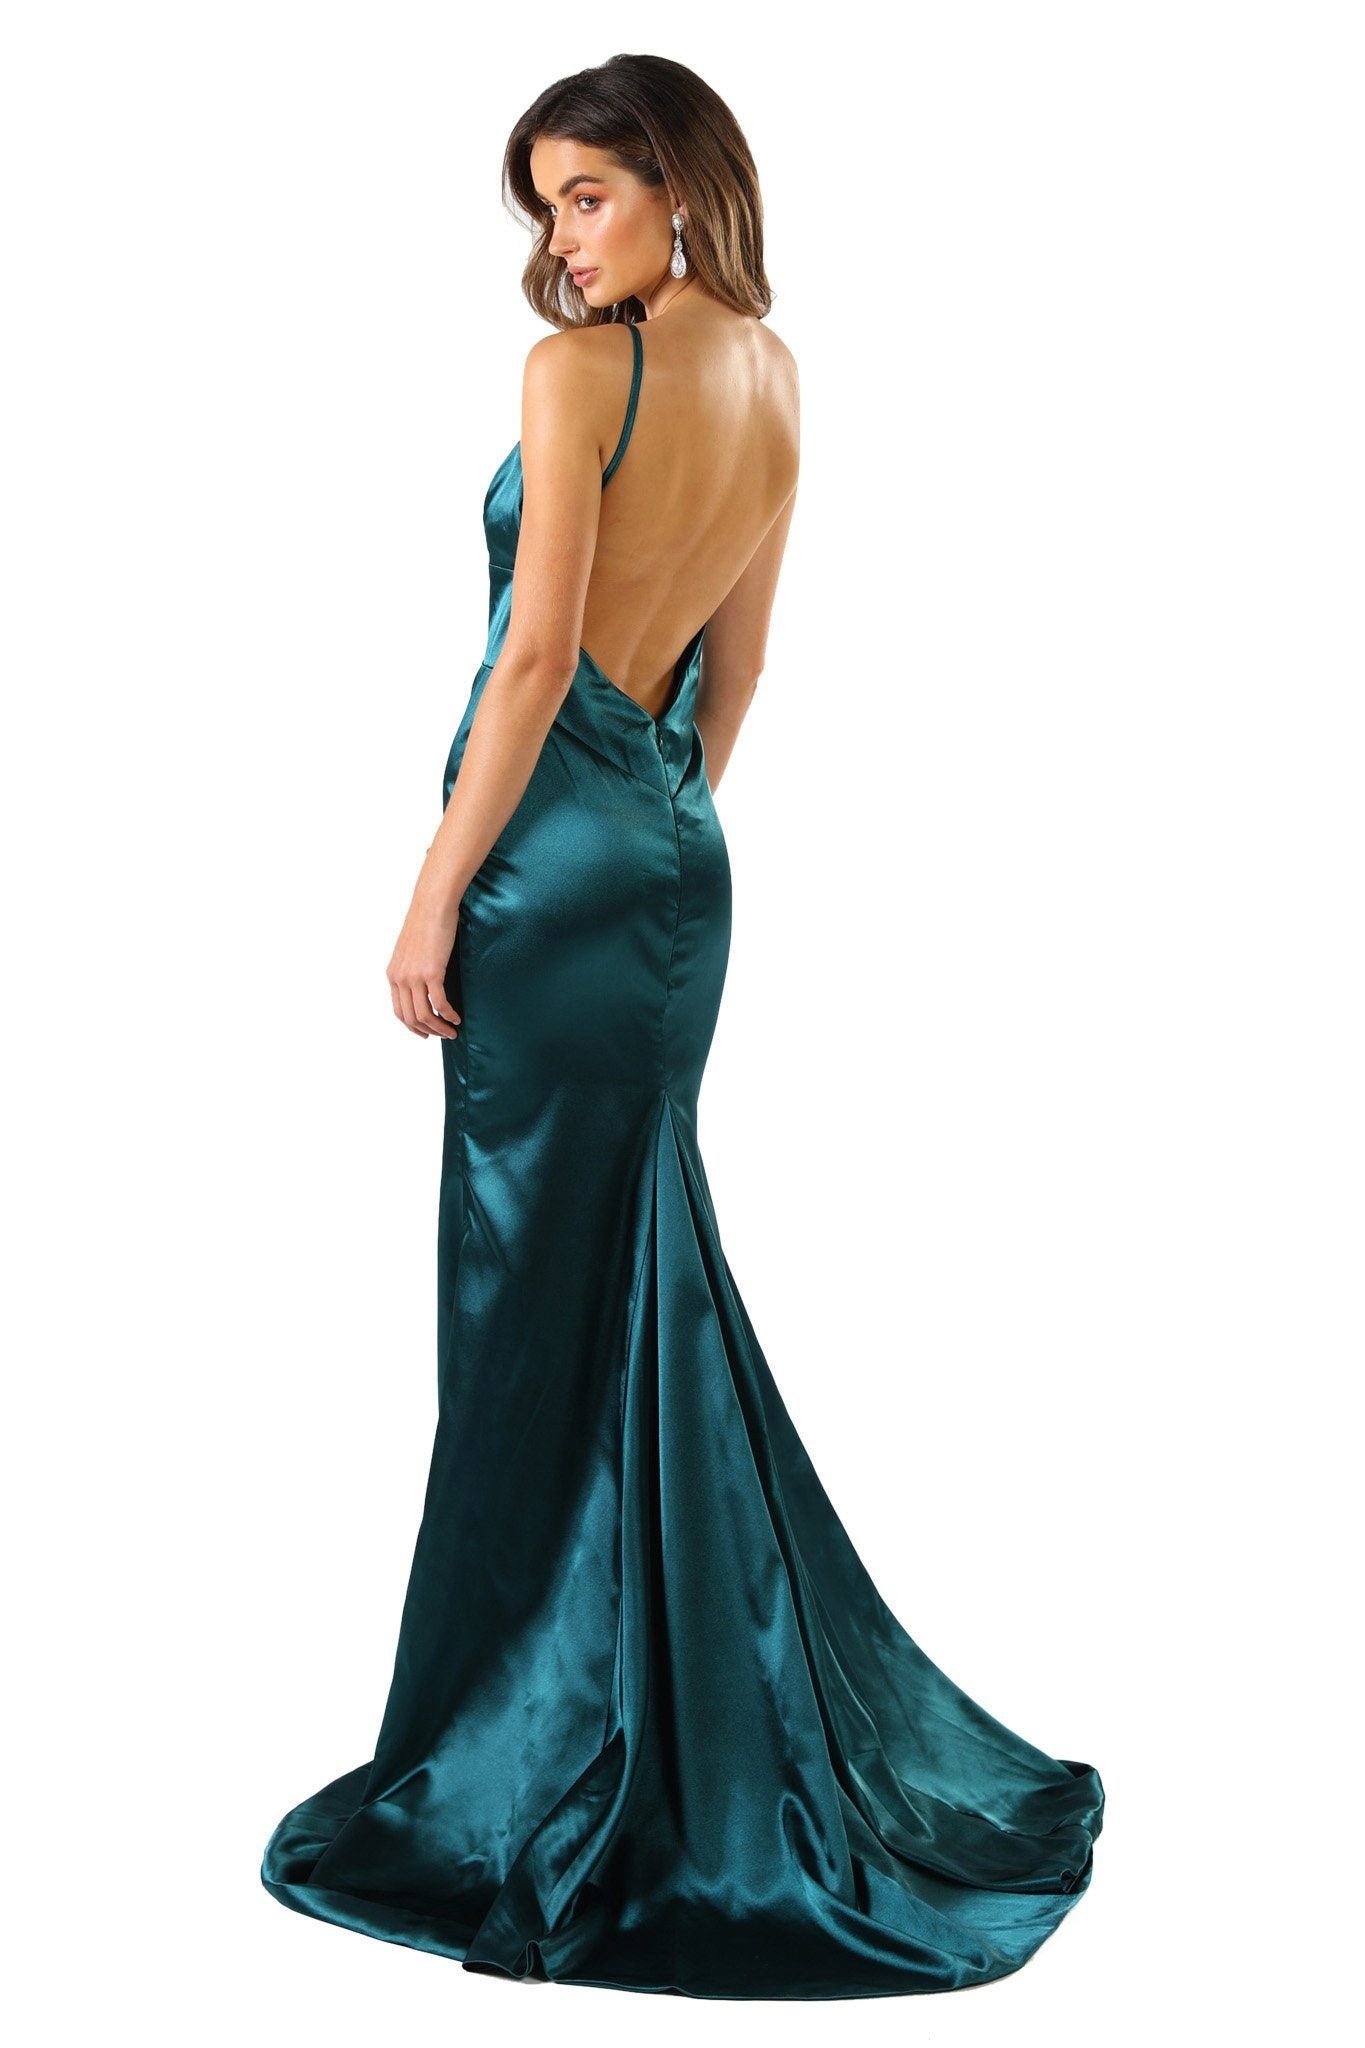 Emerald green silk satin floor length formal evening sleeveless gown with V neckline, thin shoulder straps, backless design and long train